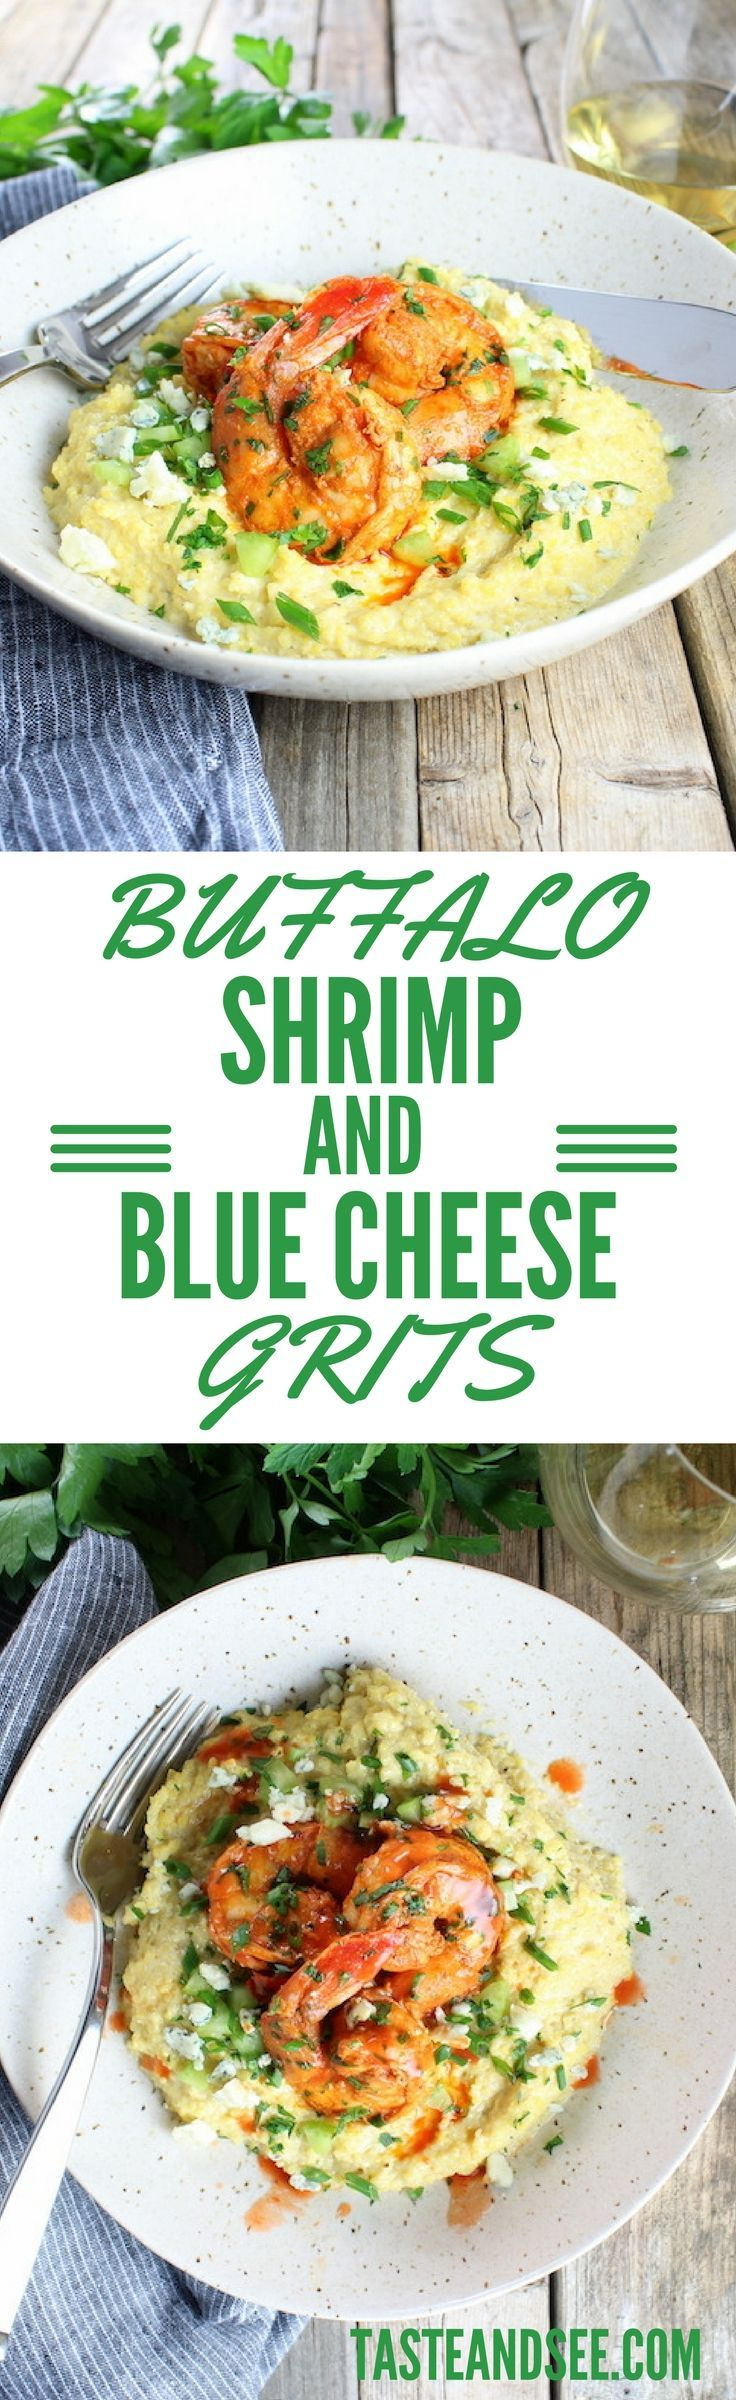 Buffalo Shrimp and Blue Cheese Grits Recipe | Taste And See